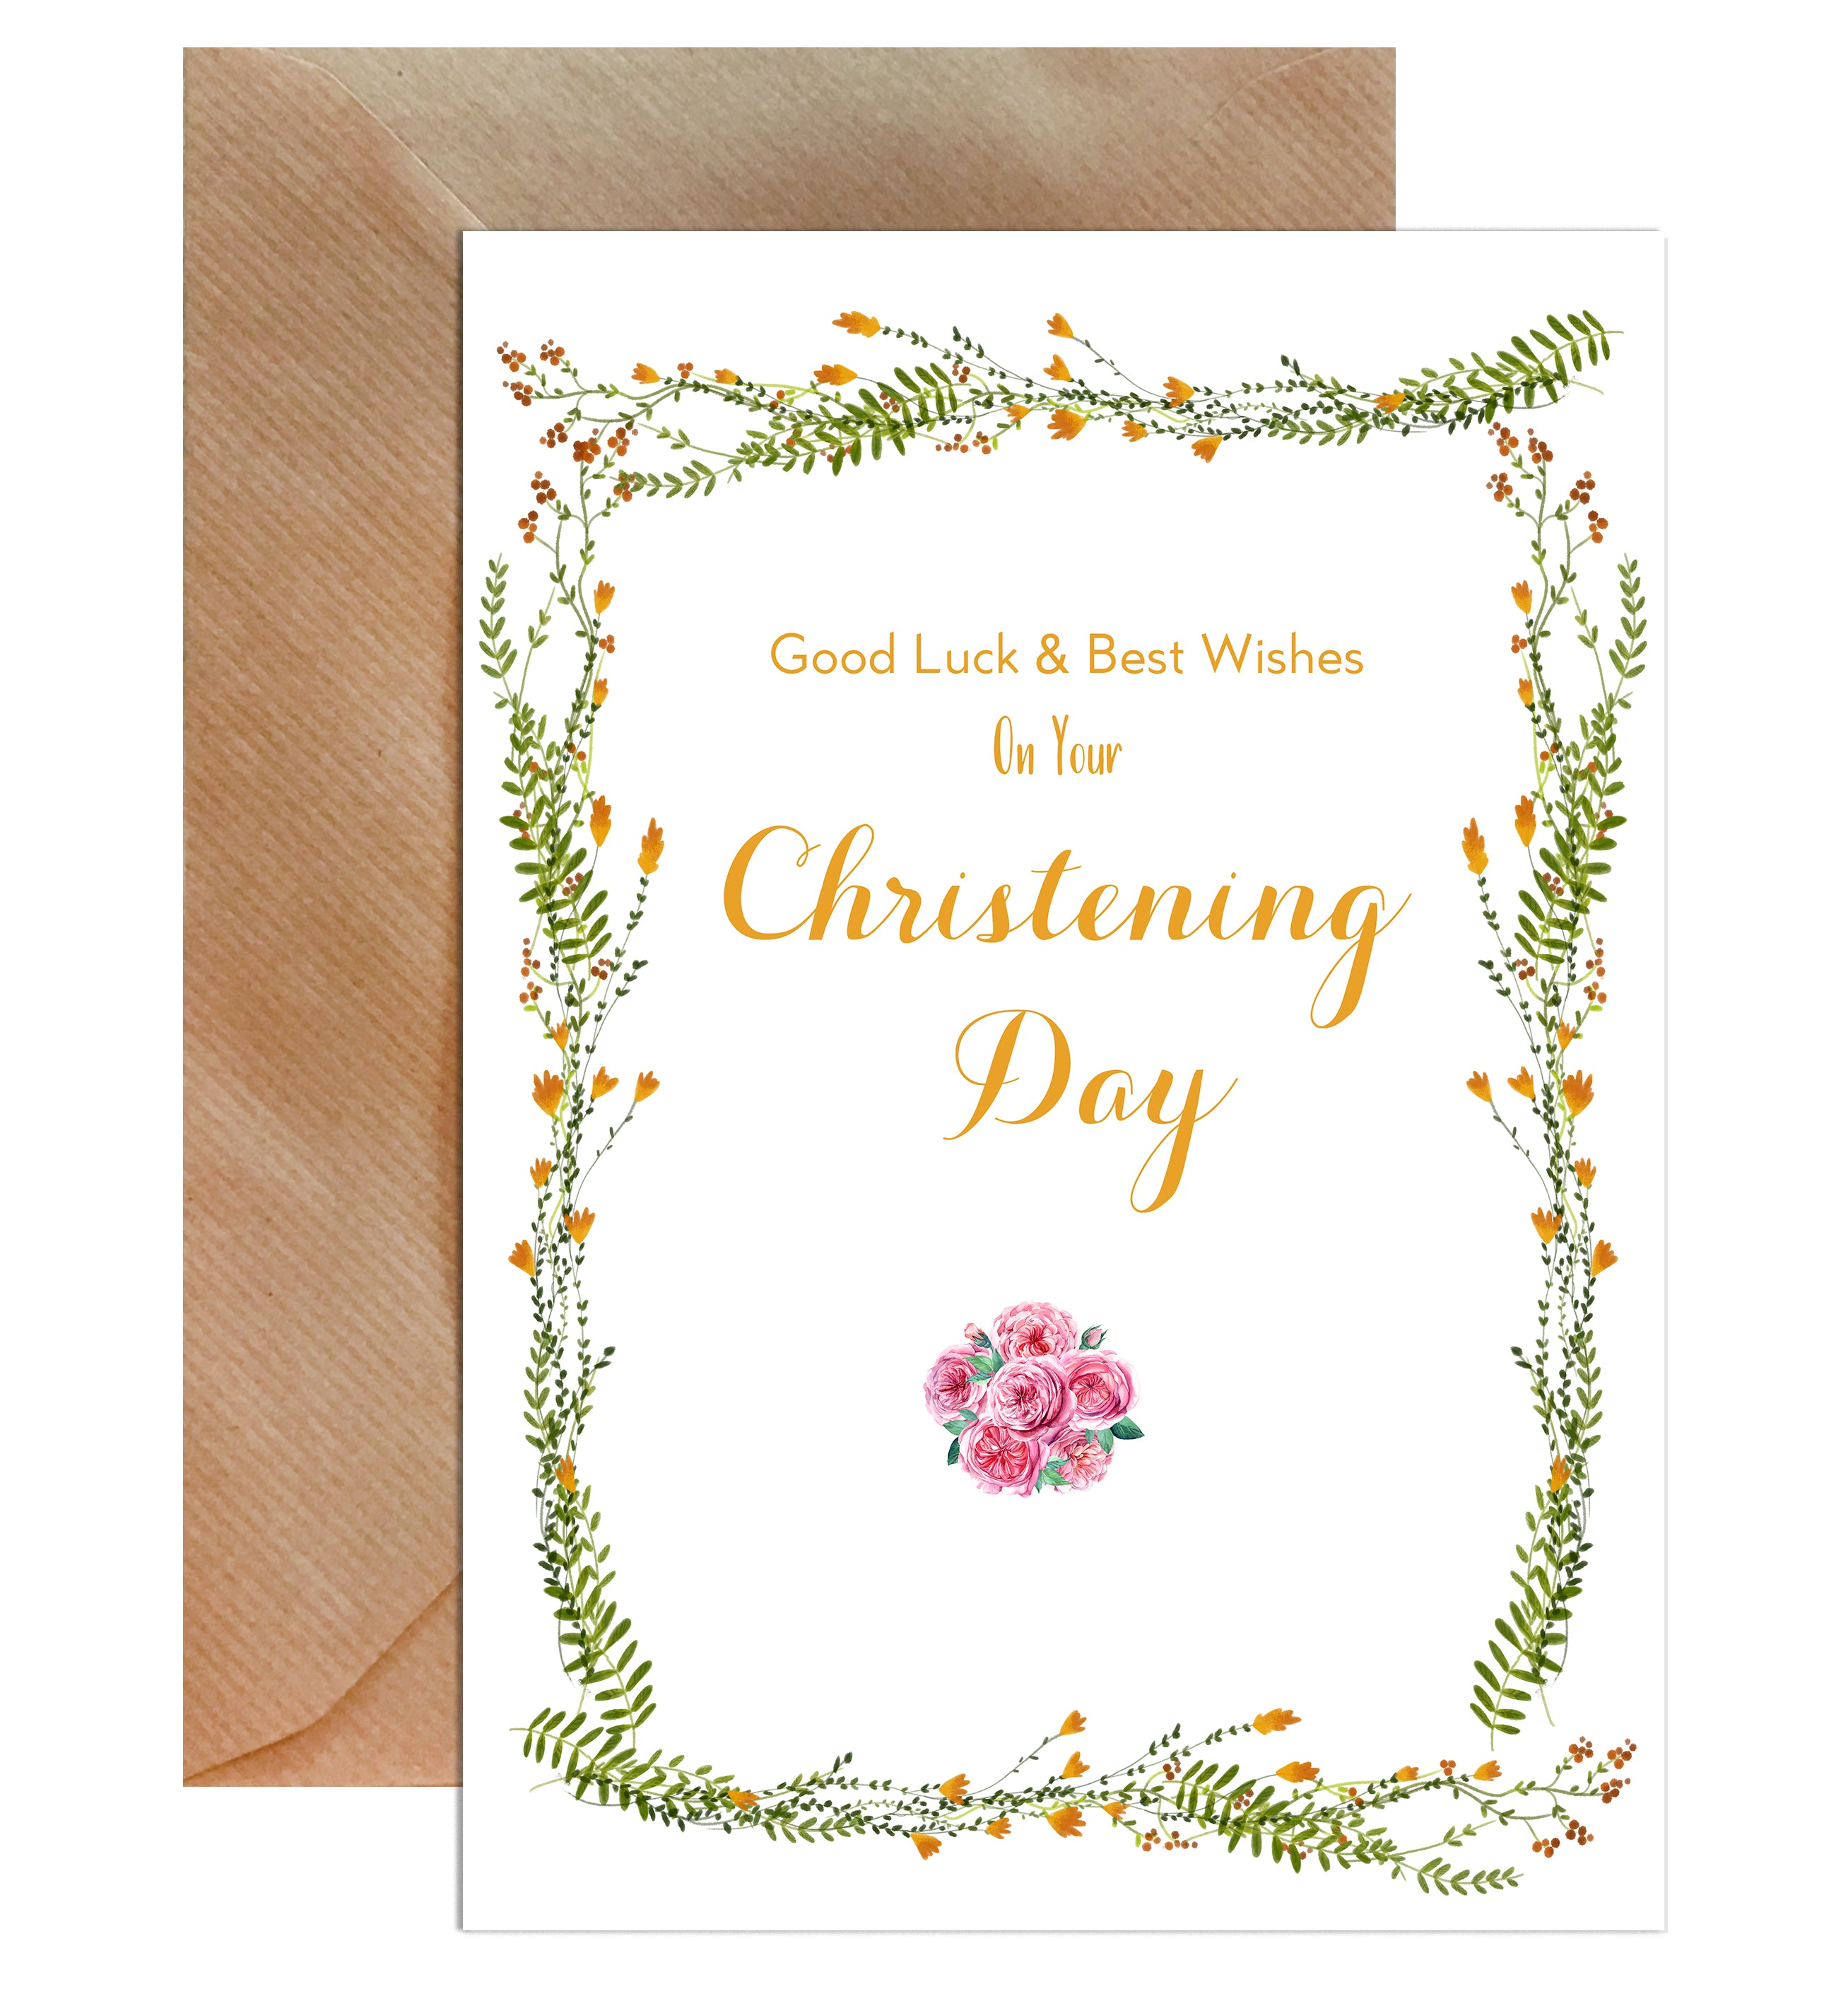 Congratulations On Your Christening Day Greeting Card-Greeting Cards-Mode Prints